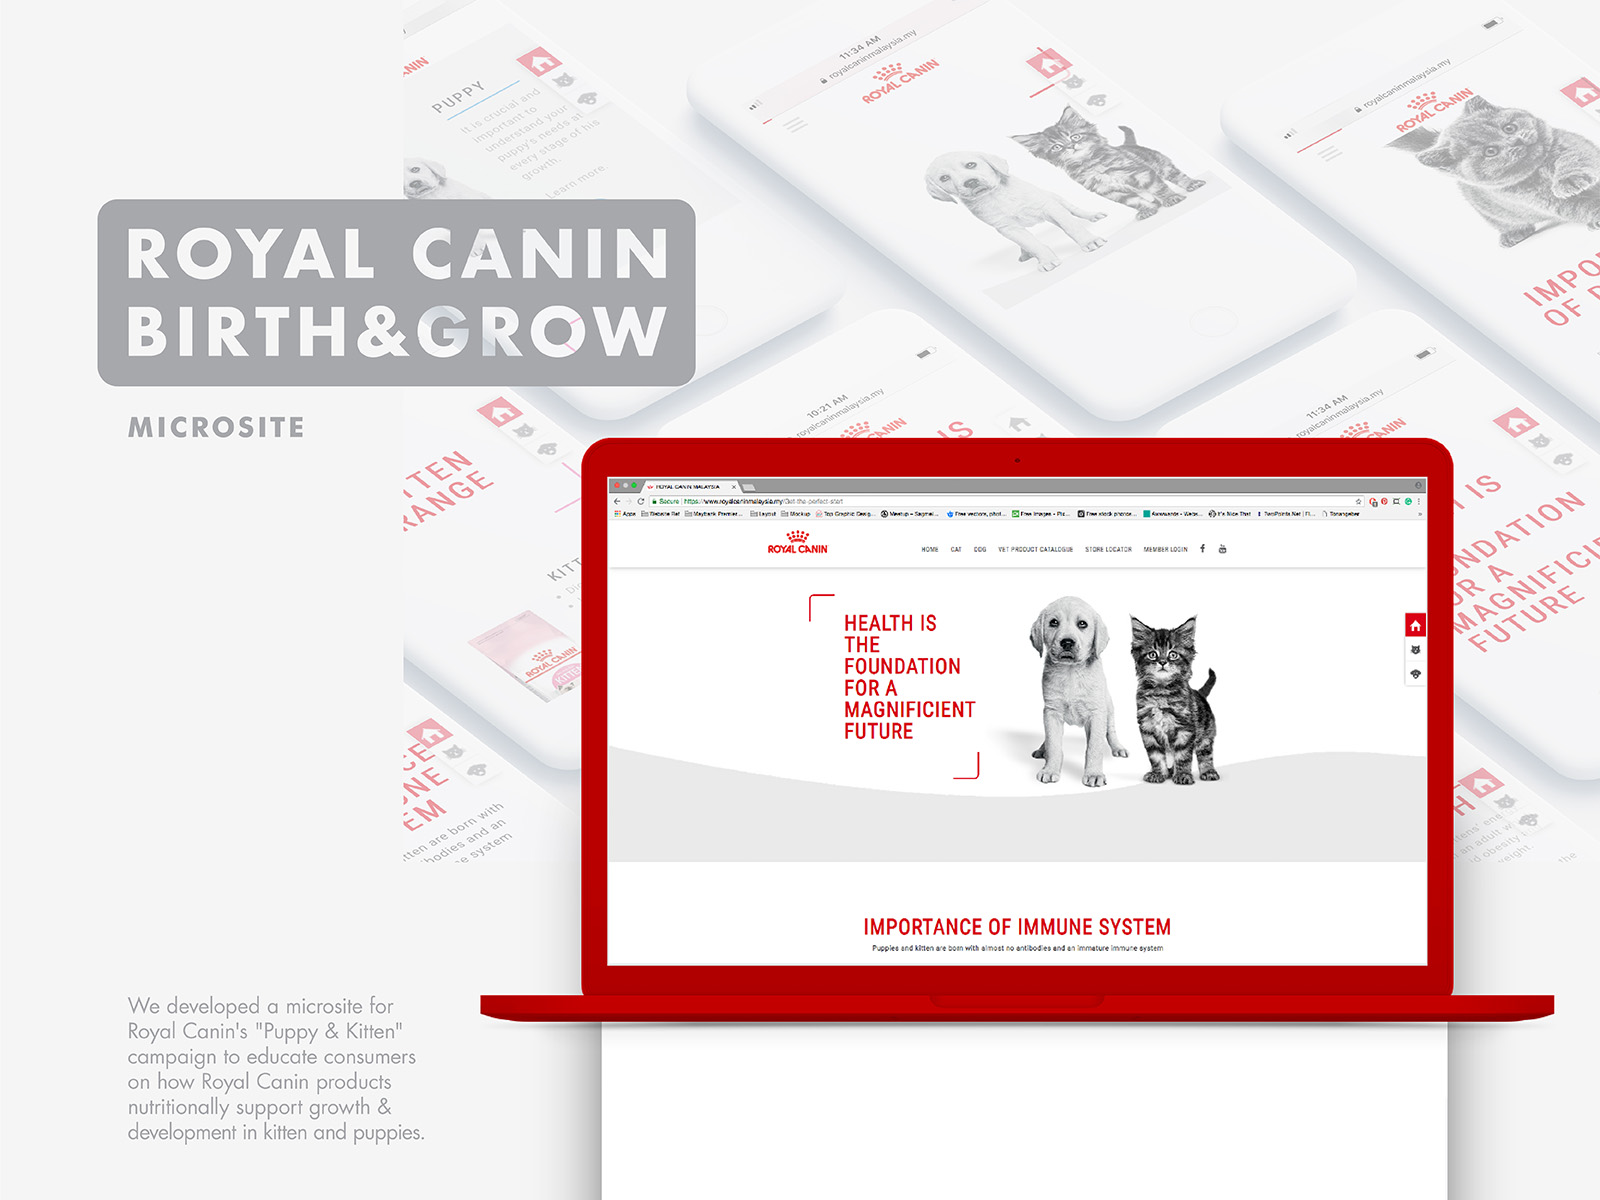 Royal Canin birth and growth campaign microsite landing page with description